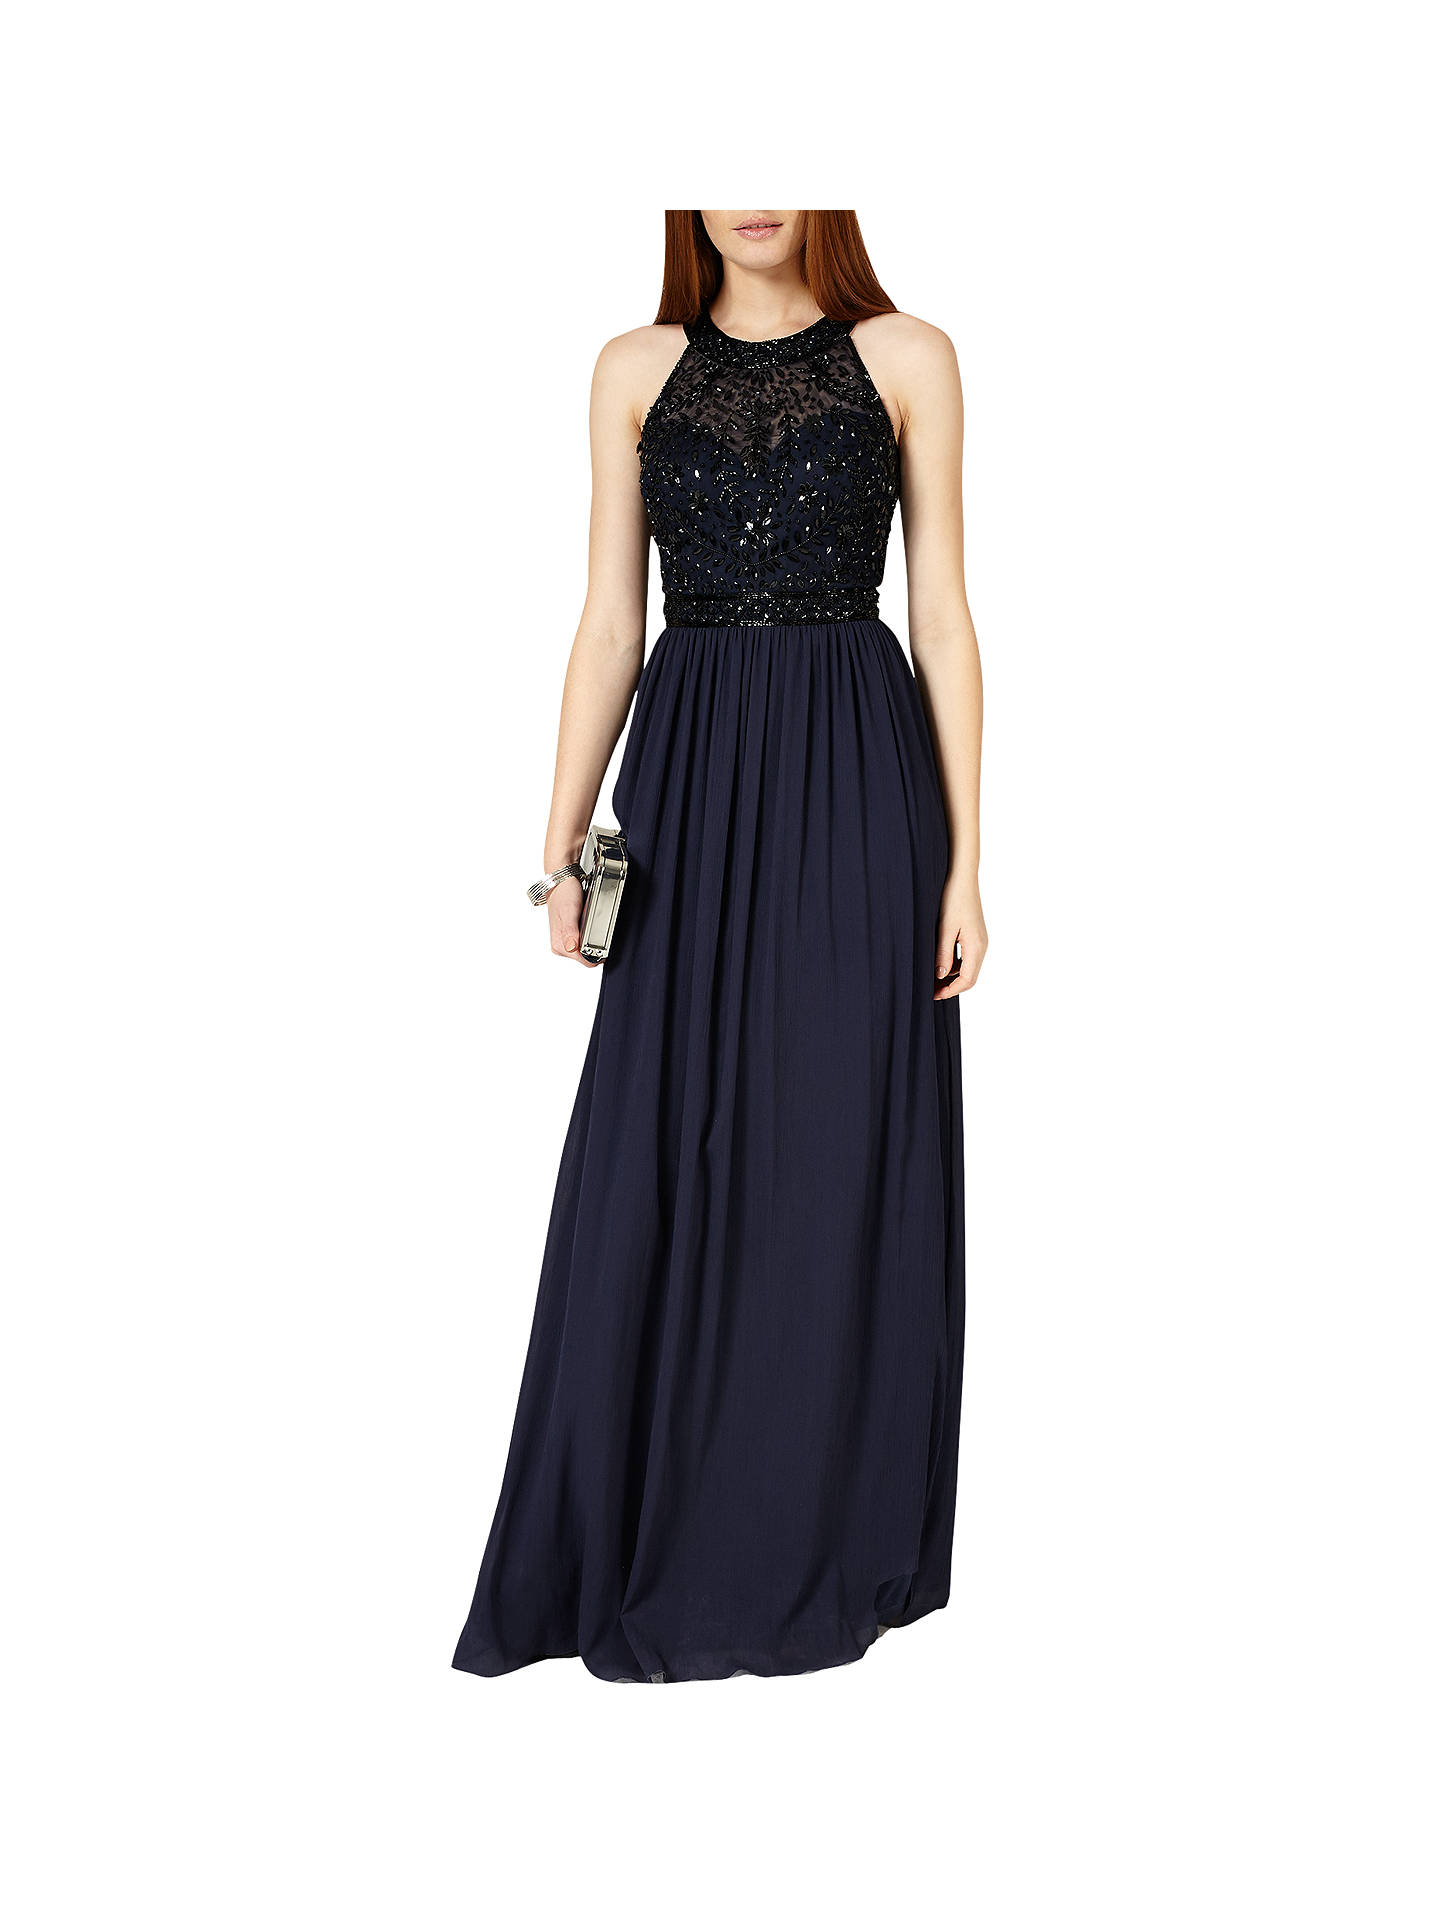 Phase Eight Collection 8 Elwyn Embellished Gown, Navy at John Lewis ...